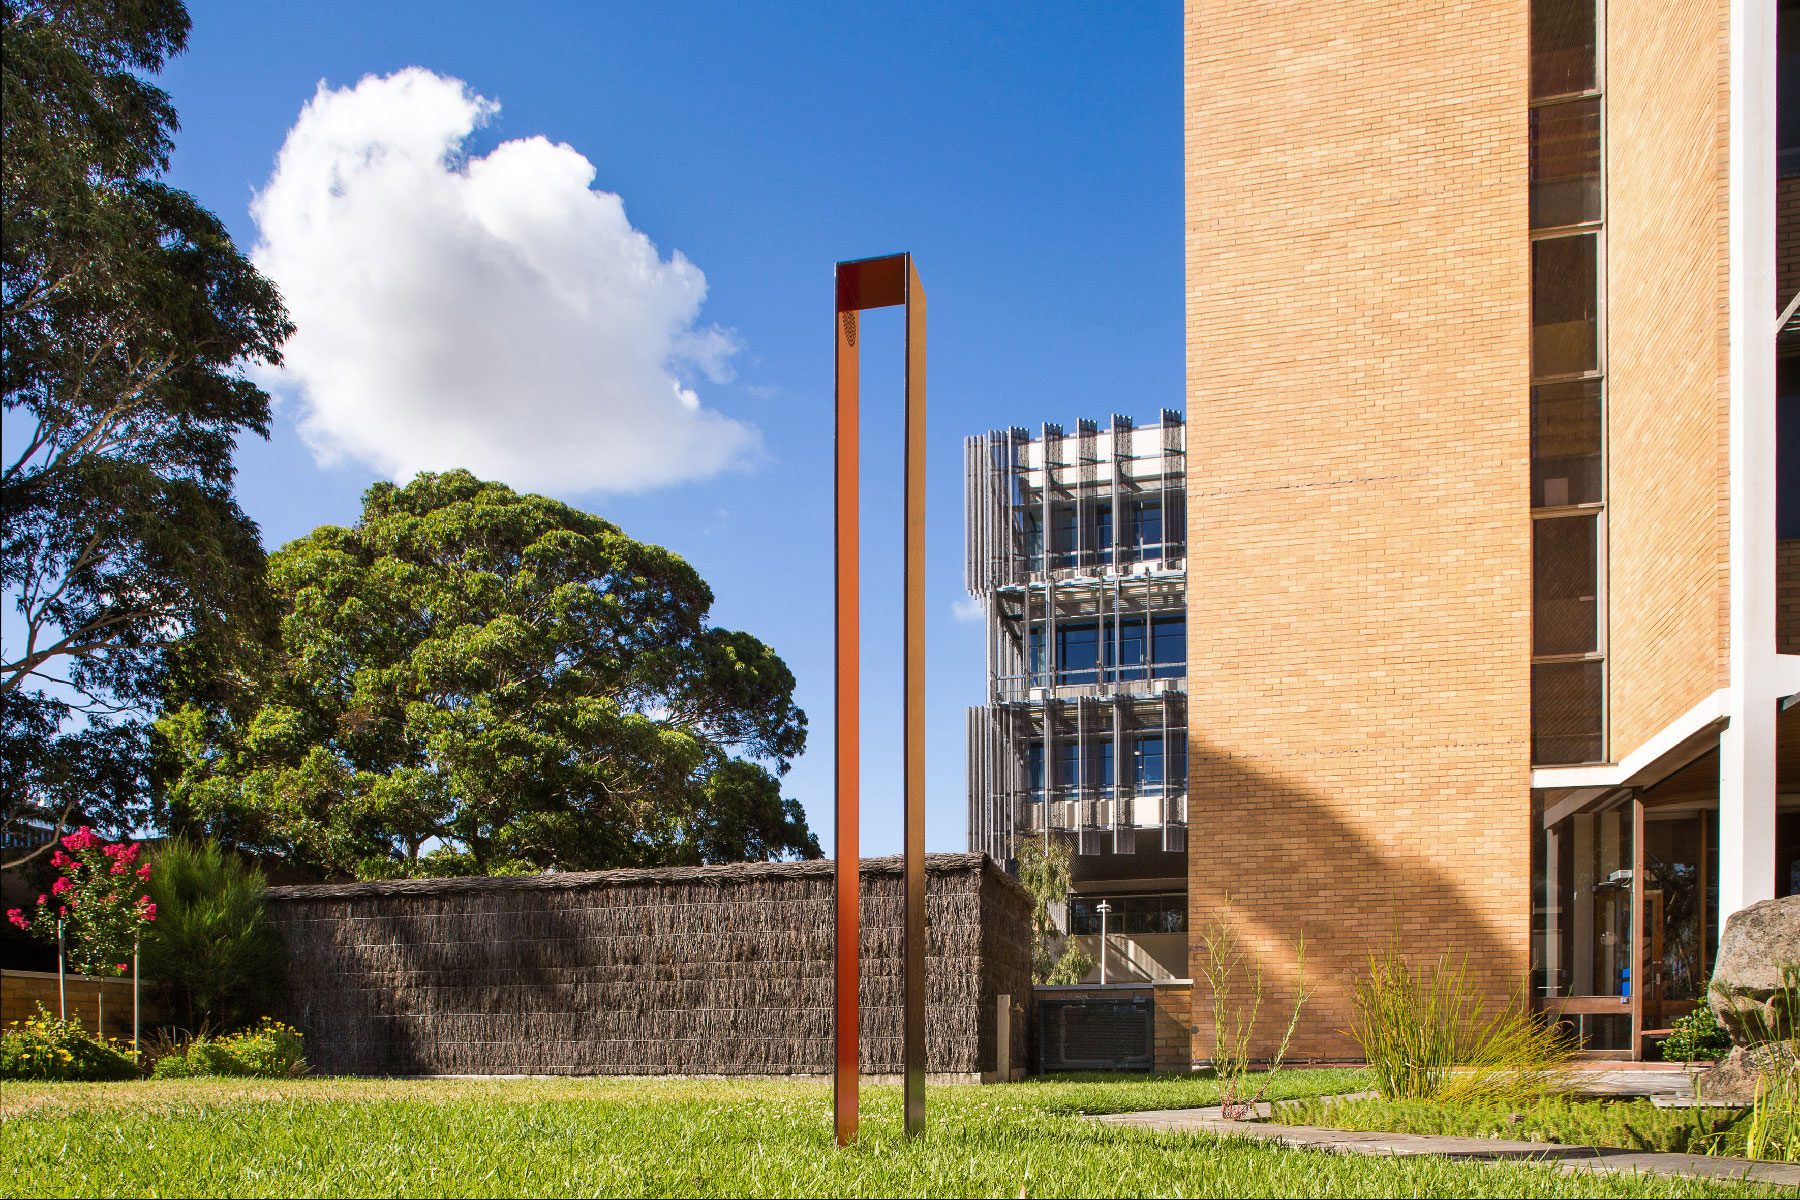 The University of Melbourne – interpretative and wayfinding signage